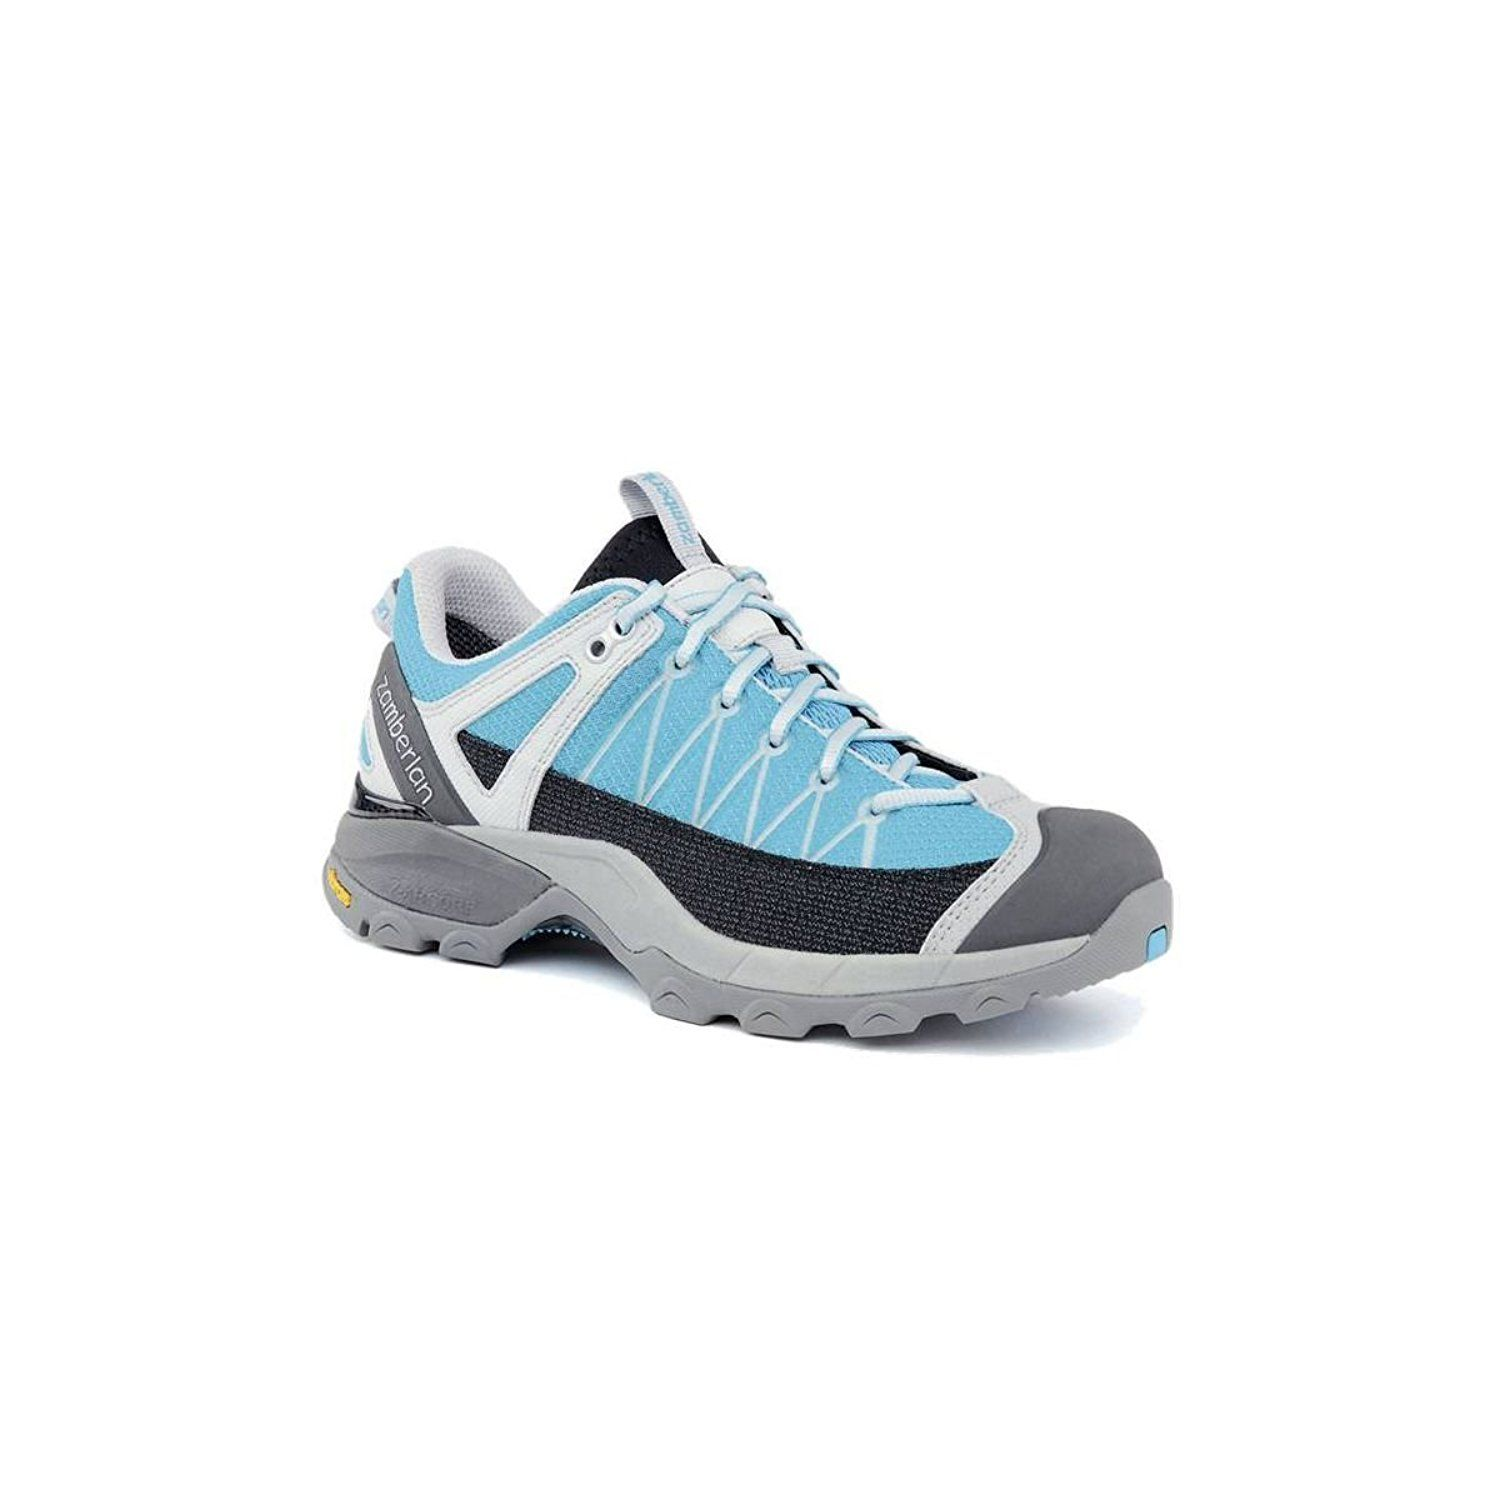 Women S Zamberlan Crosser Rr Hiking Boots Details Can Be Found By Clicking On The Image Hiking Women Shoes Hiking Shoes Women